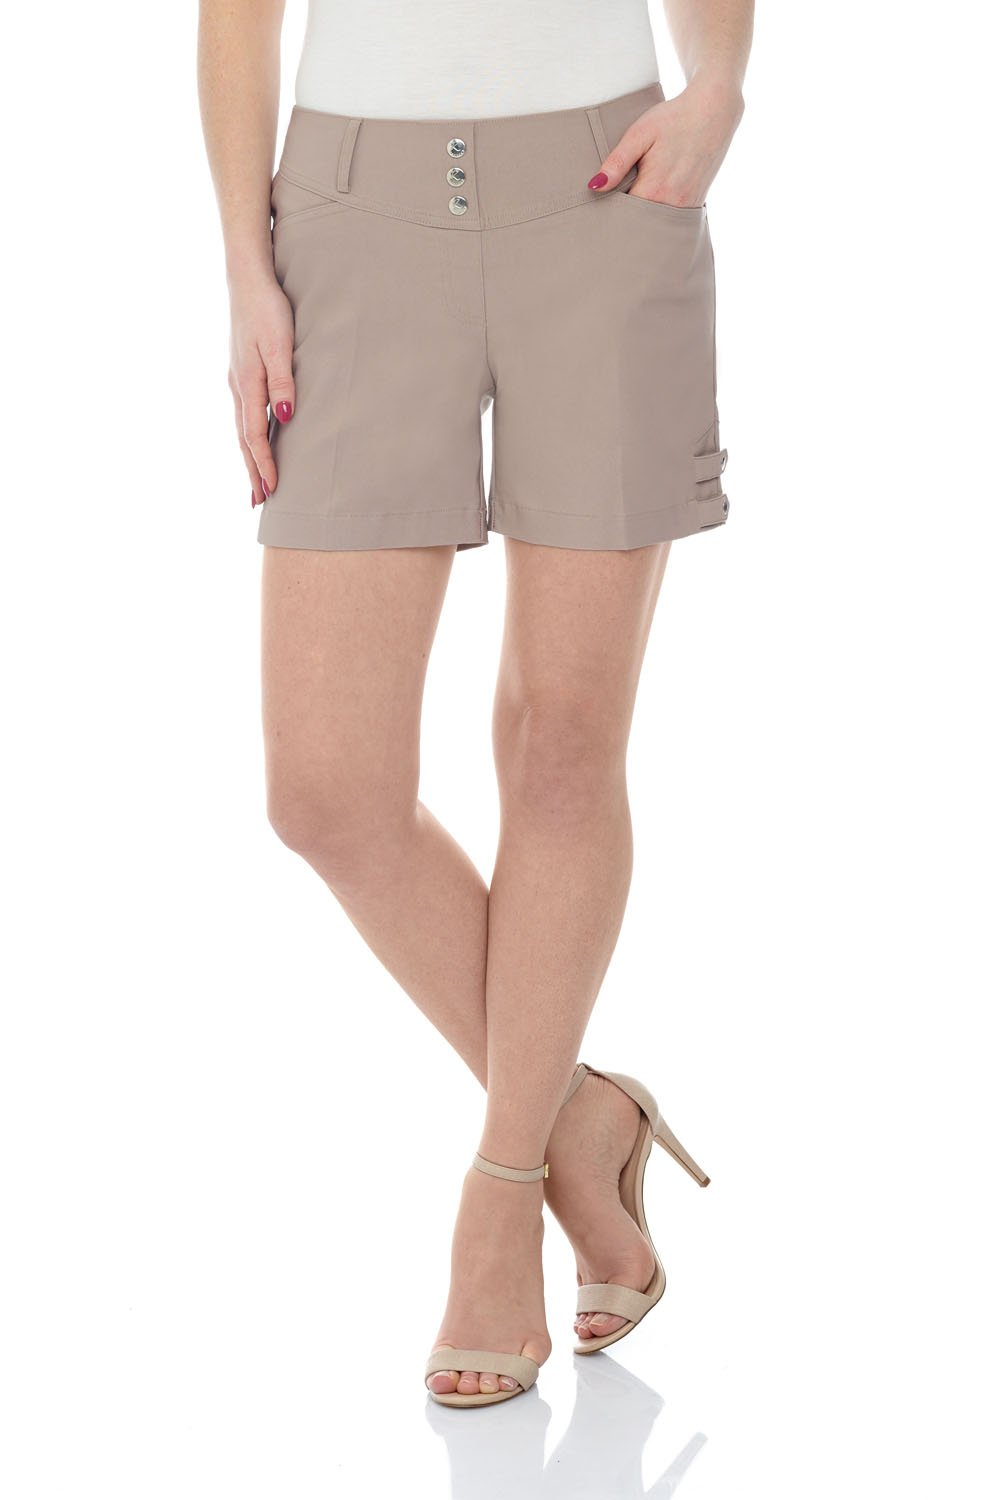 Rekucci Womens Ease into Comfort Perfection Modern Office Short